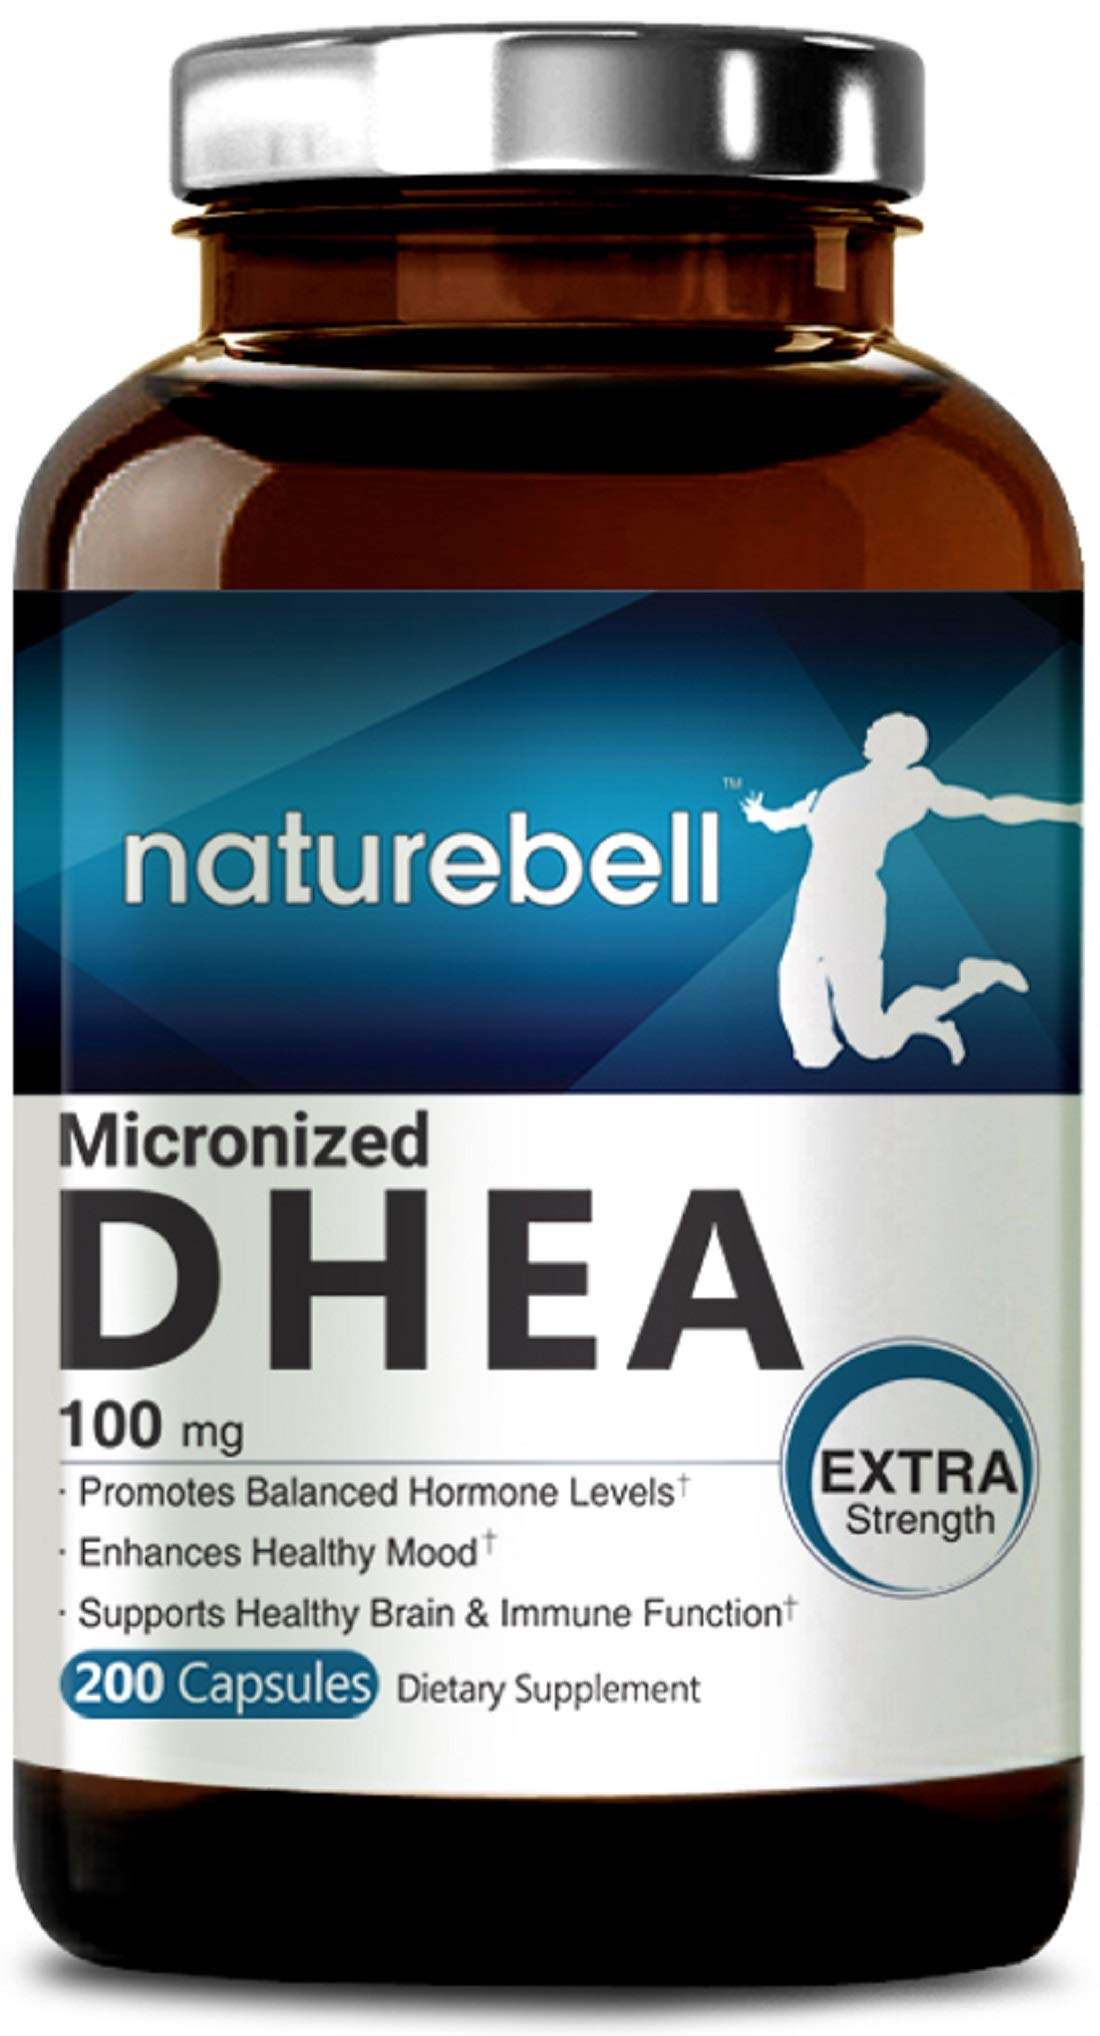 Maximum Strength DHEA 100mg, 200 Capsules, Supports Energy Level, Metabolism and Libido Health for Men and Women, No GMOs, Made in USA by NatureBell